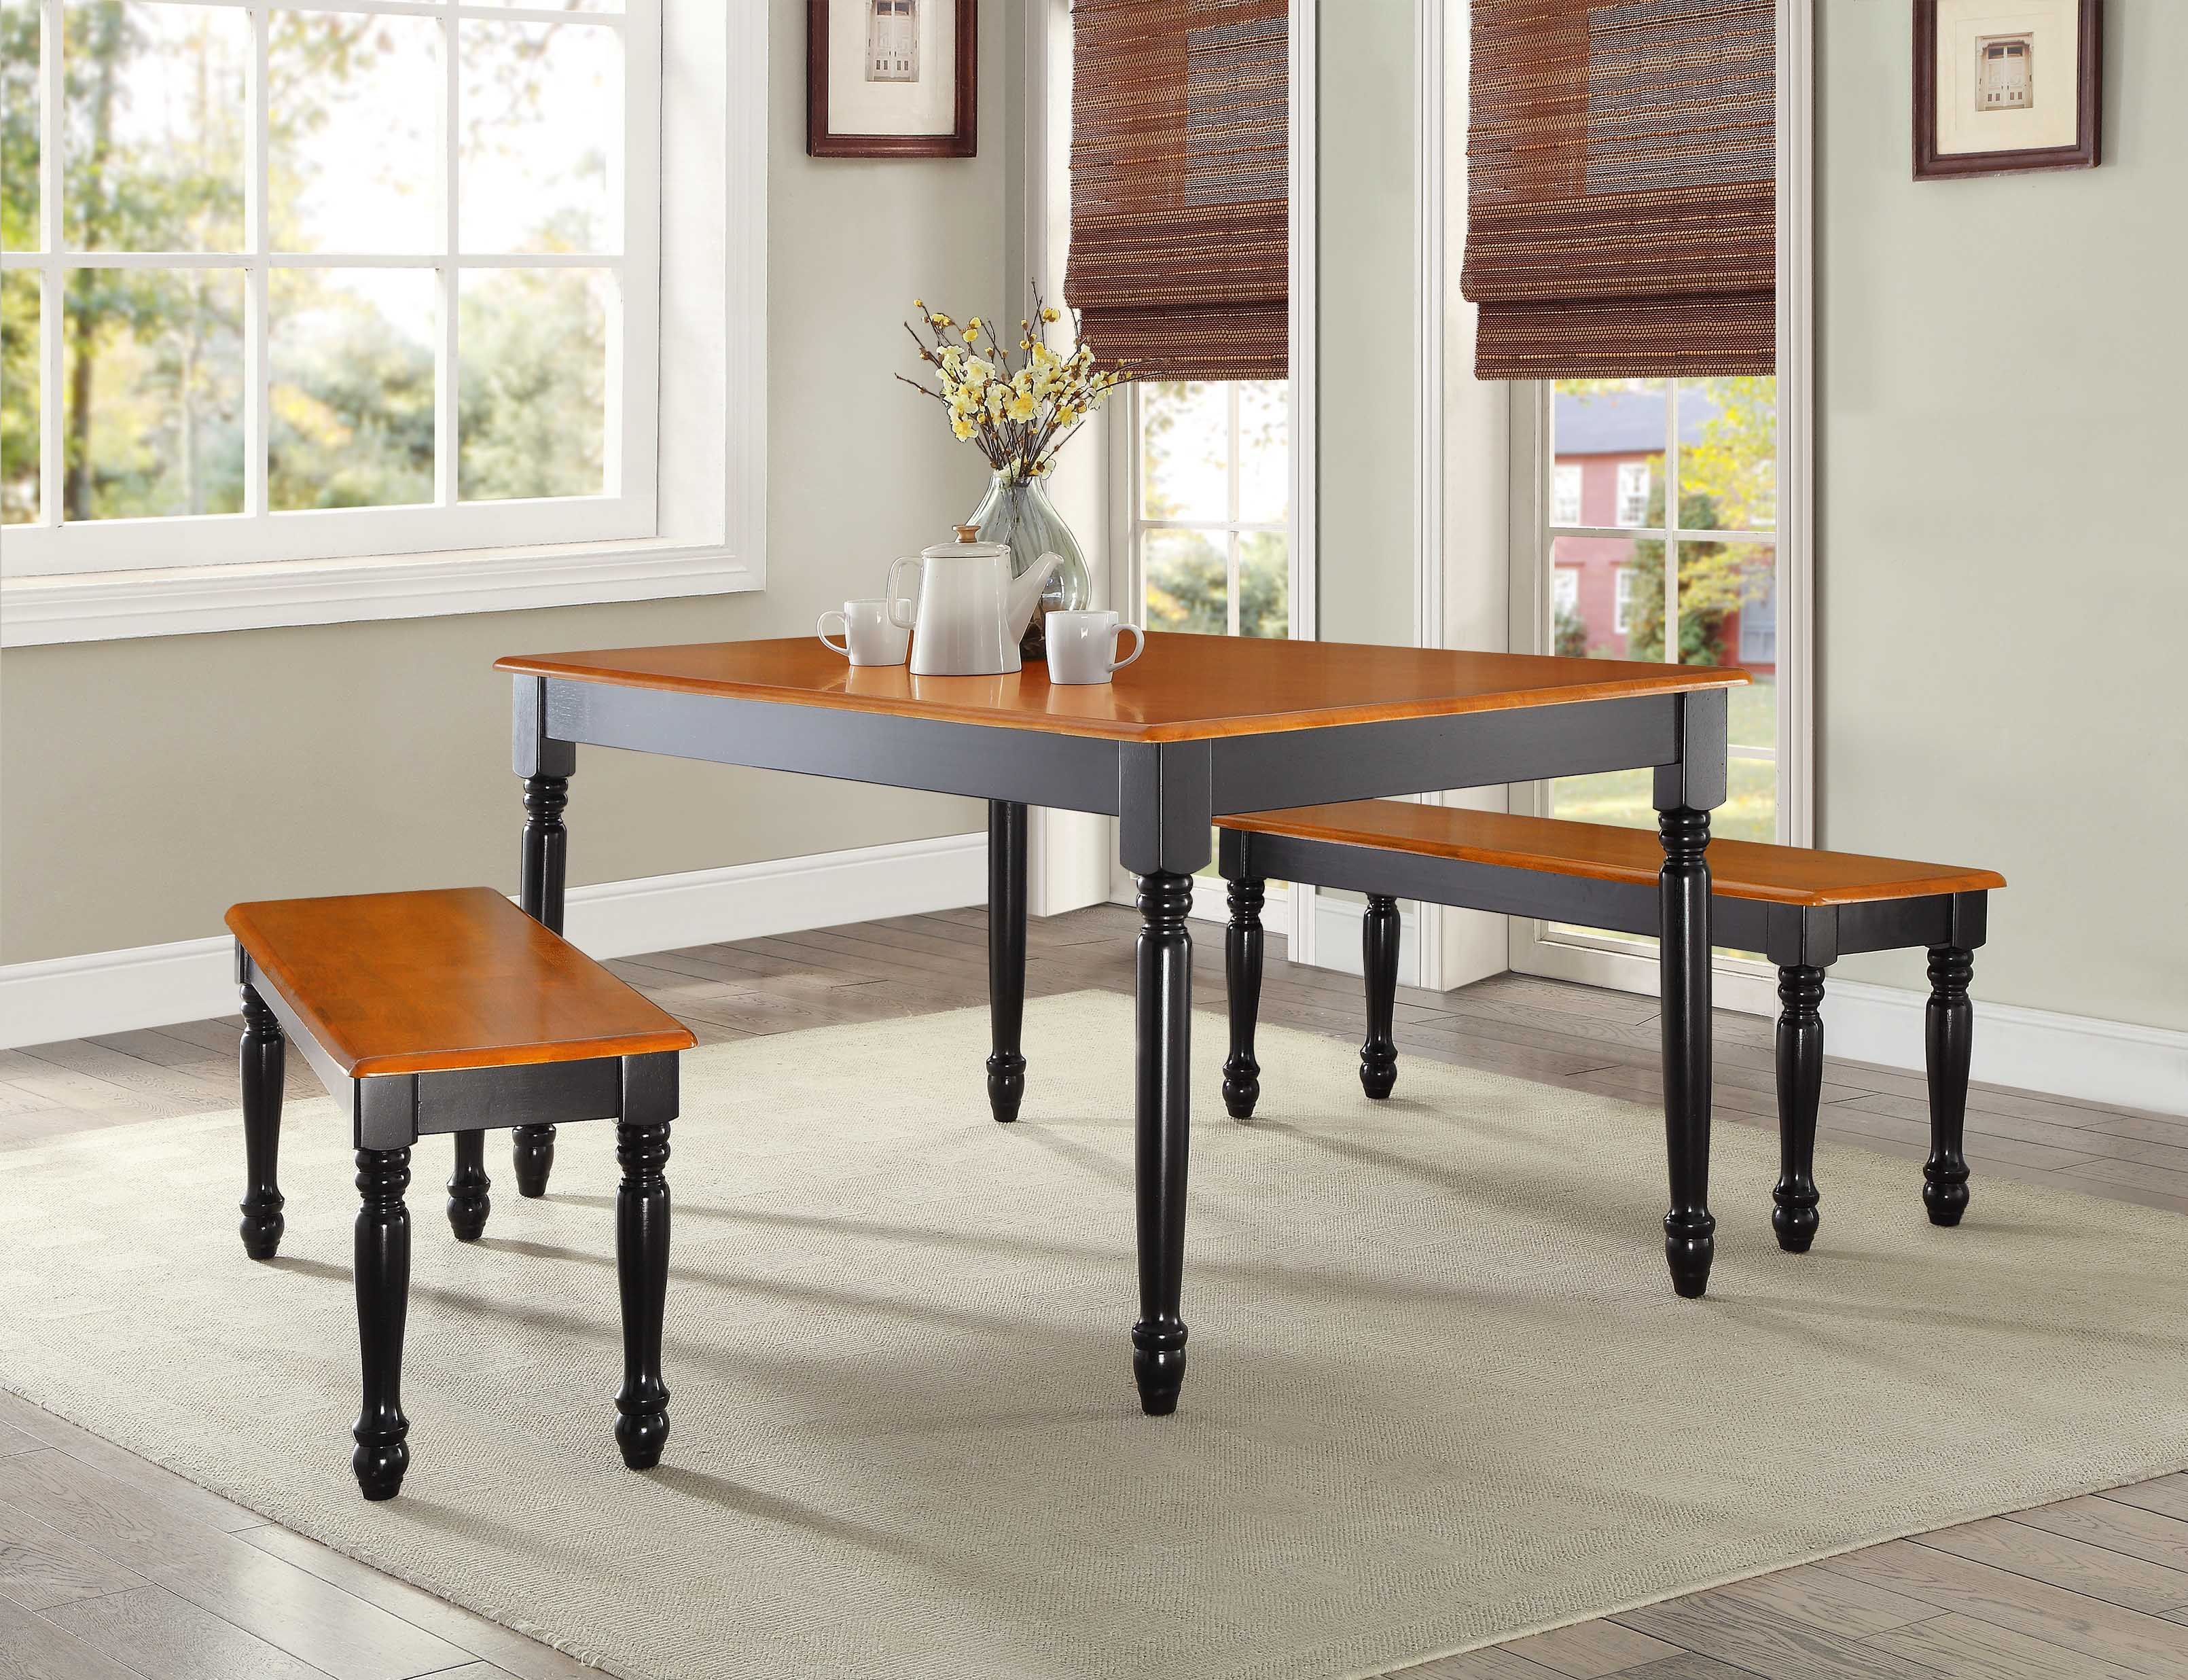 Superb Dining Room Table Seats Up To For 6 People Solid Oak Wood Modern Black  Rectangle | EBay